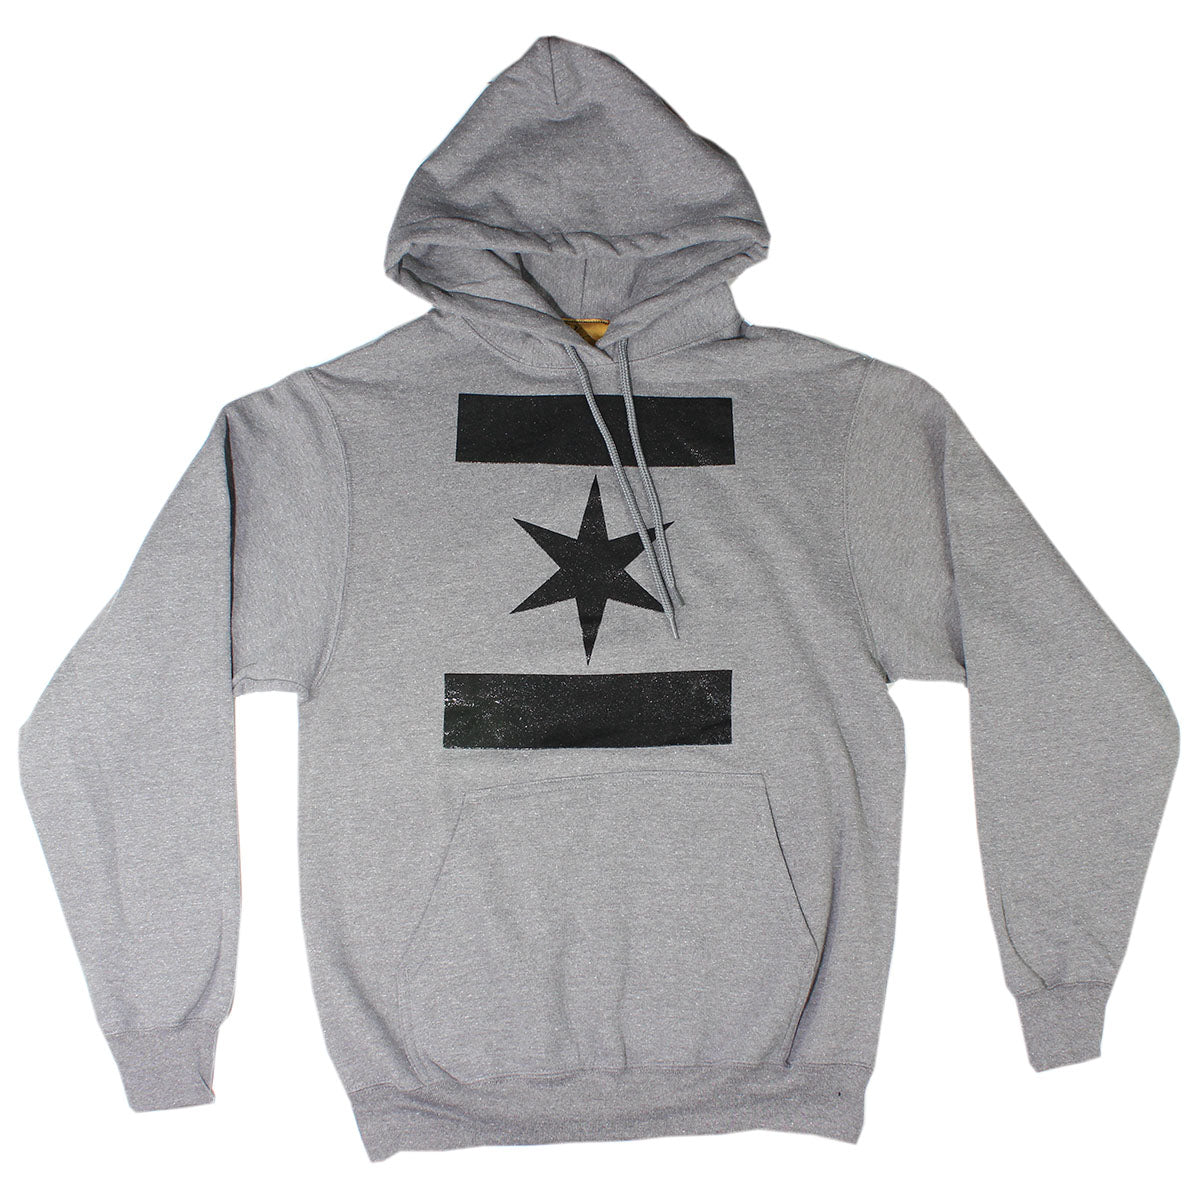 We Are One Star Hoodie (Cool Grey)